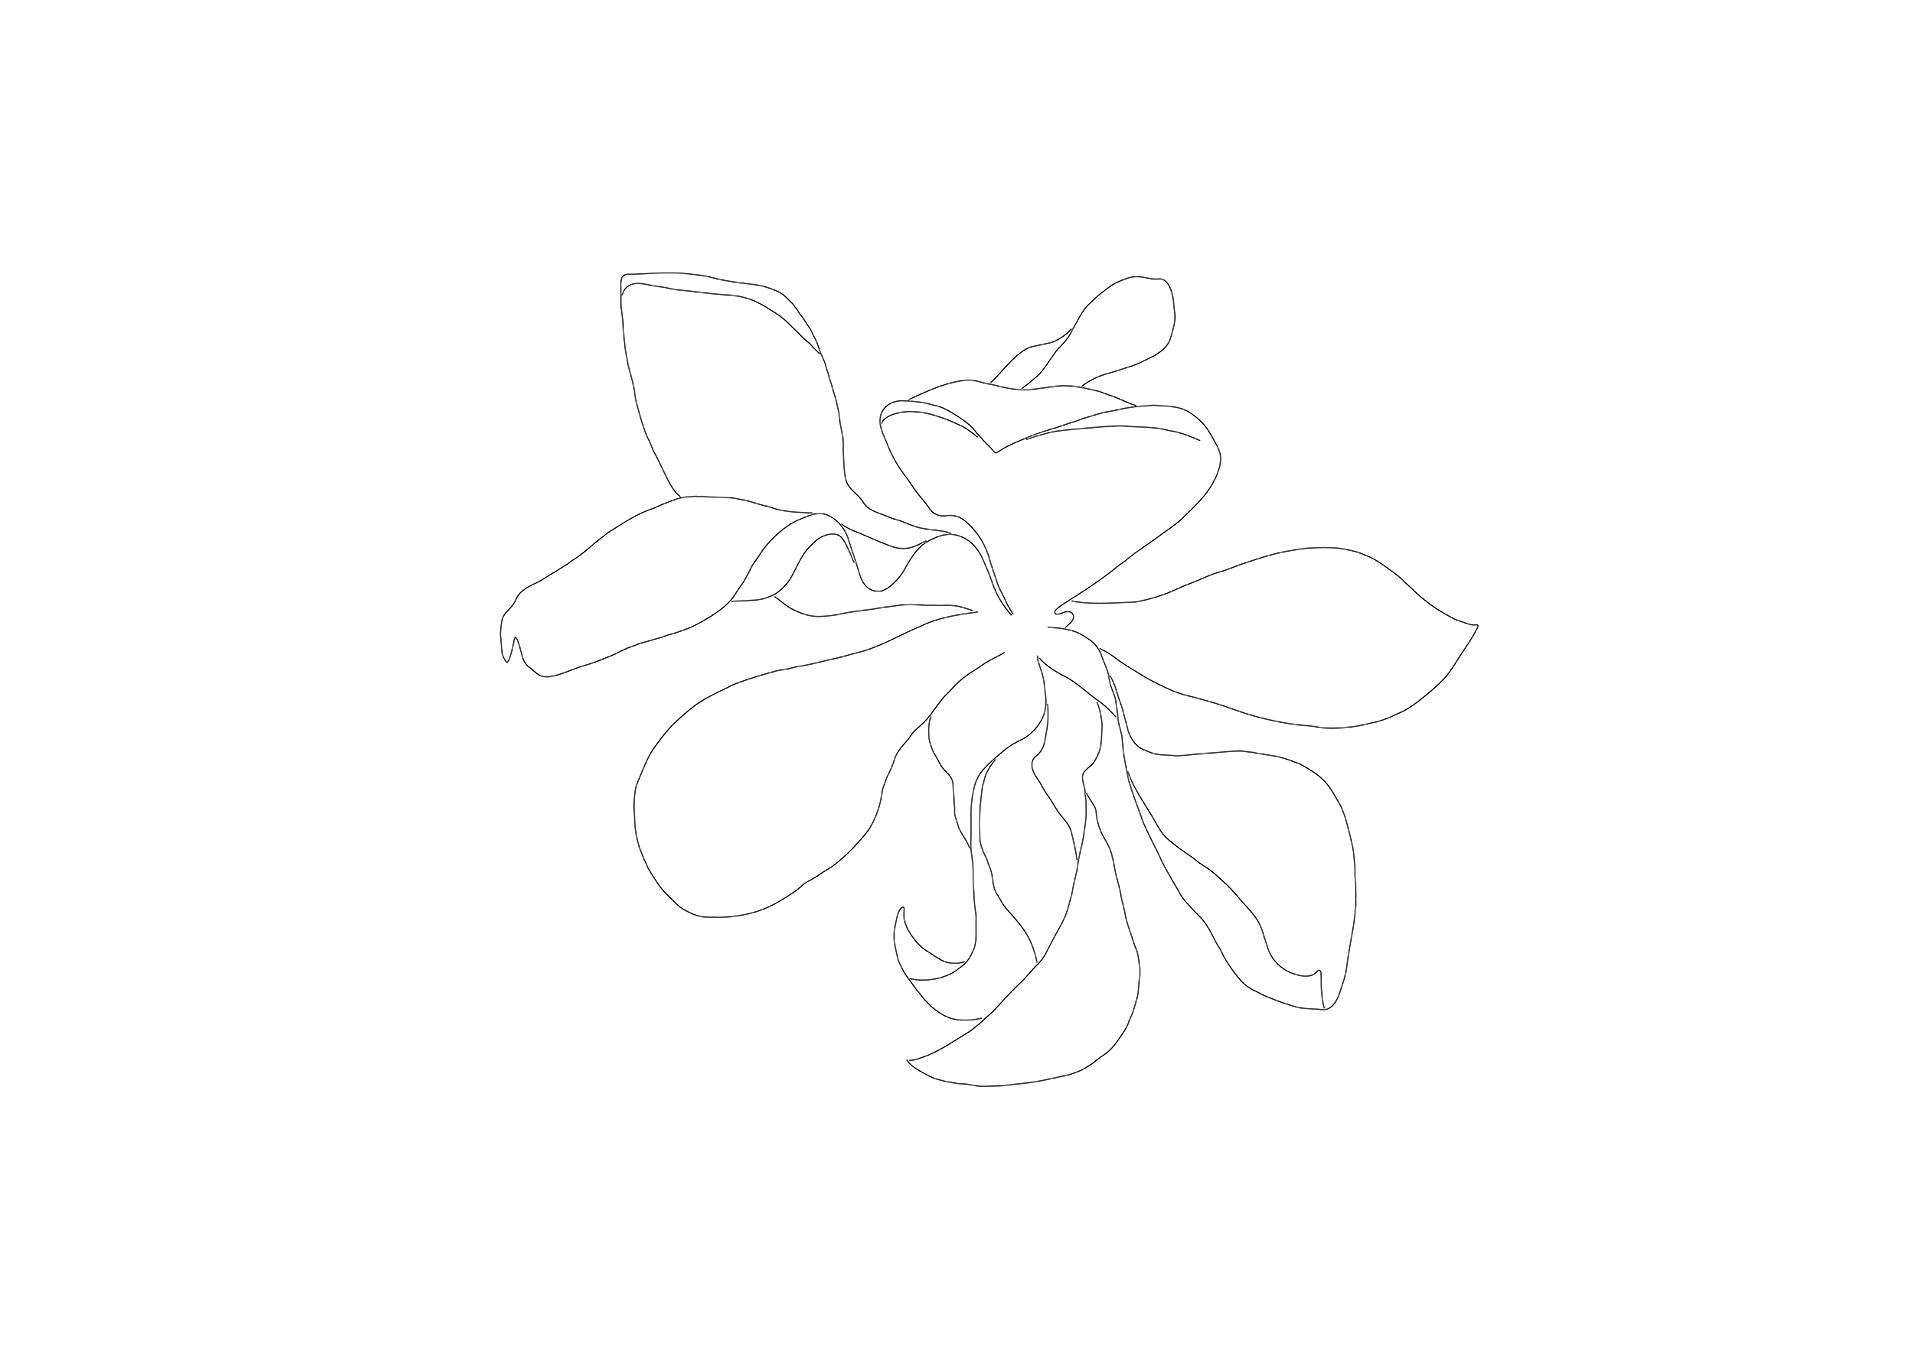 Magnolia Drawing 2, Flower 2